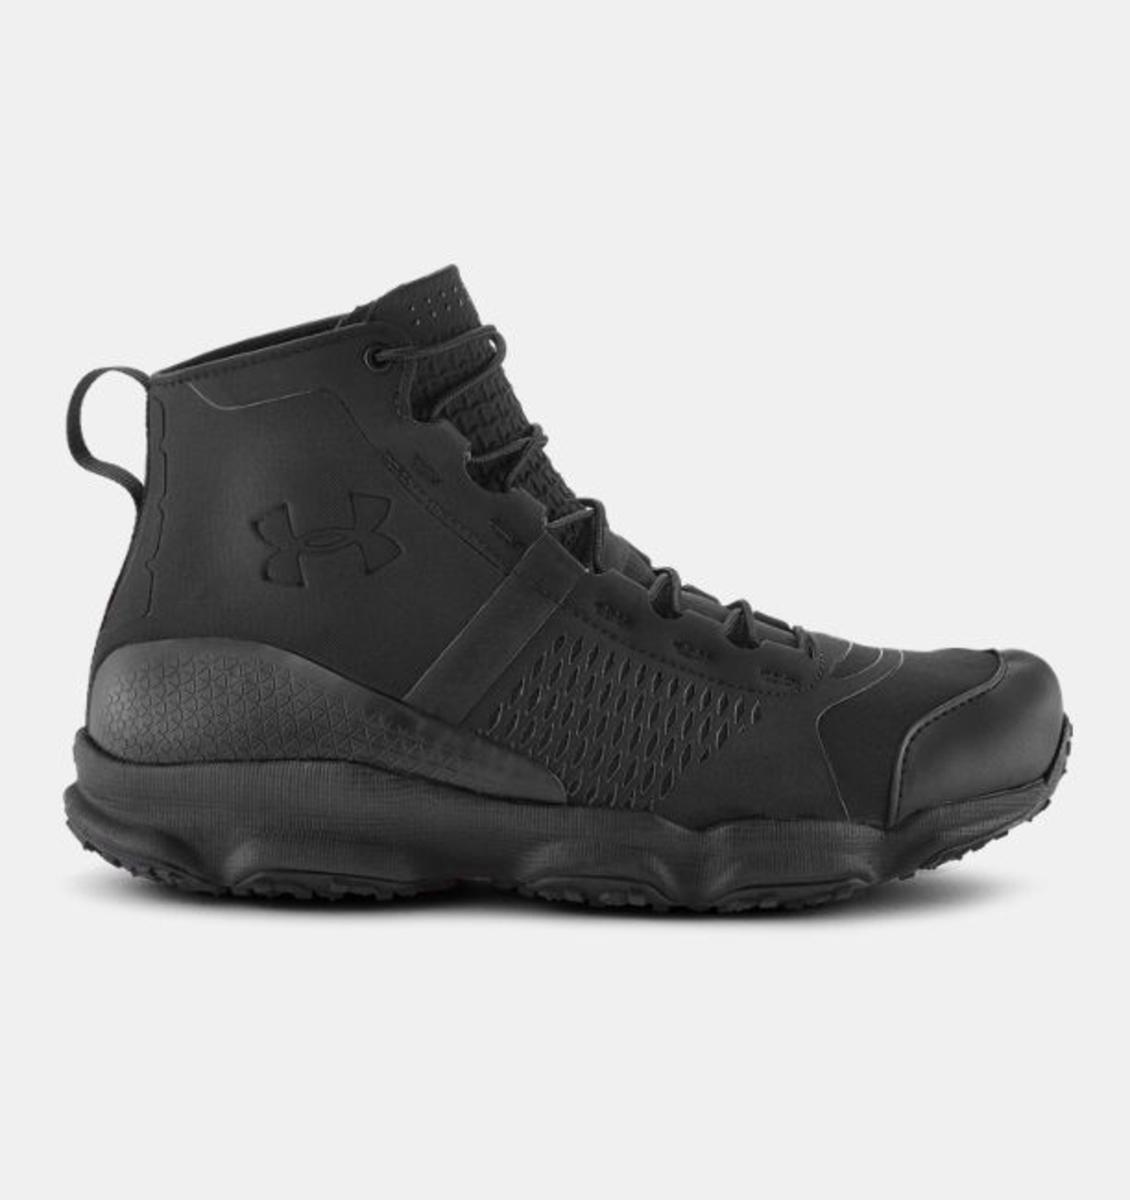 Under Armour Mens Ua Speedfit Hike Boots Desert Sand/desert Sand/desert Sand